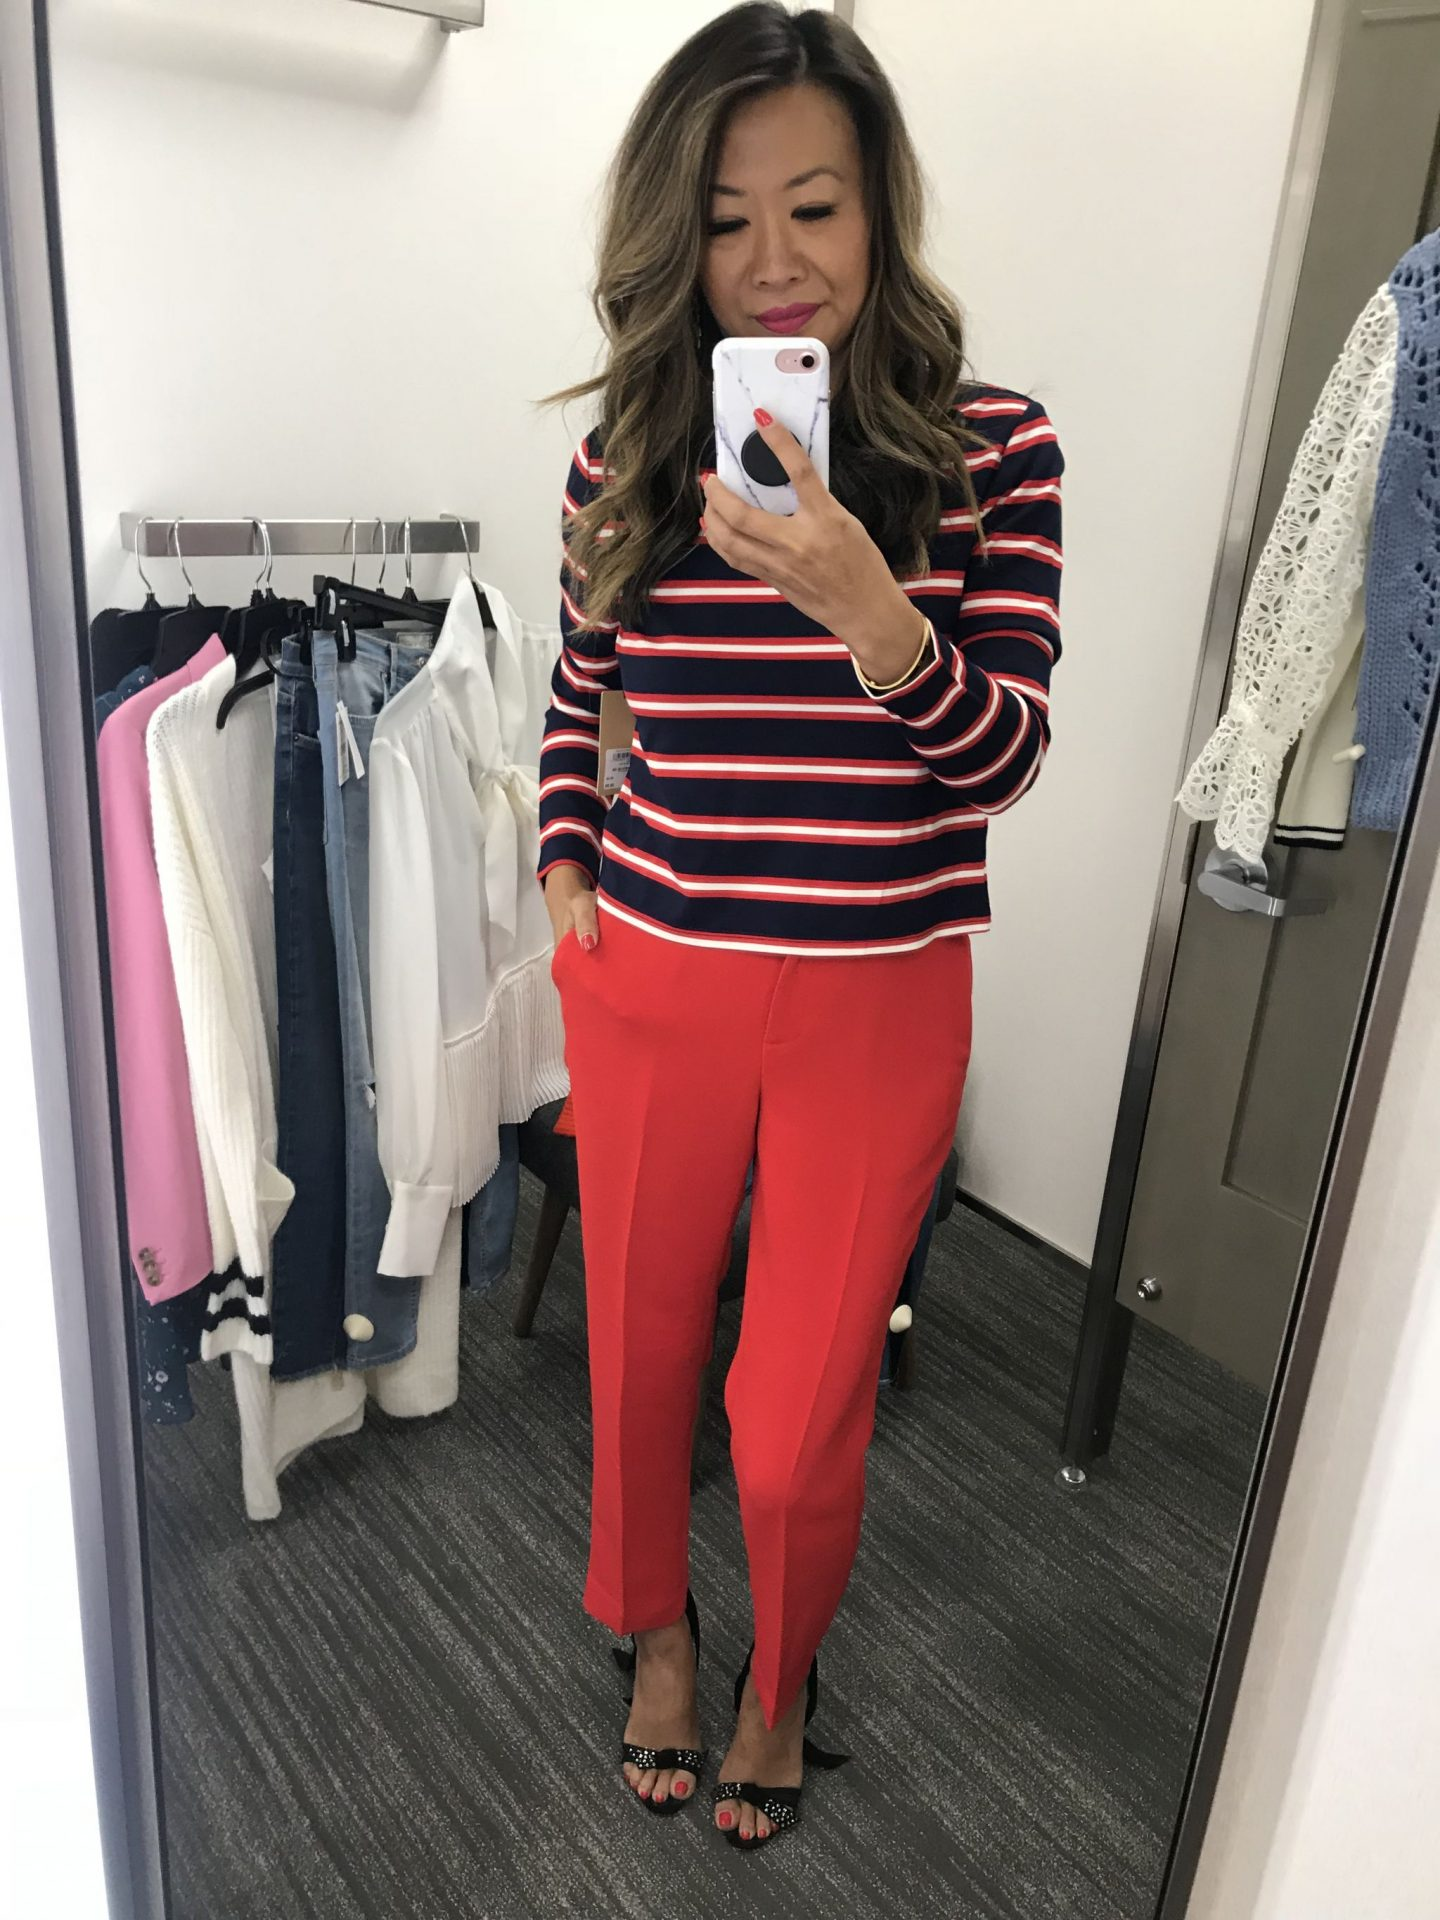 Halogen Striped Top and Red Pants, Best work Wear from Nordstrom, Nordstrom Anniversary Sale, Best items from Nordstrom, What to Wear for Fall in Chicago, Jennifer Worman